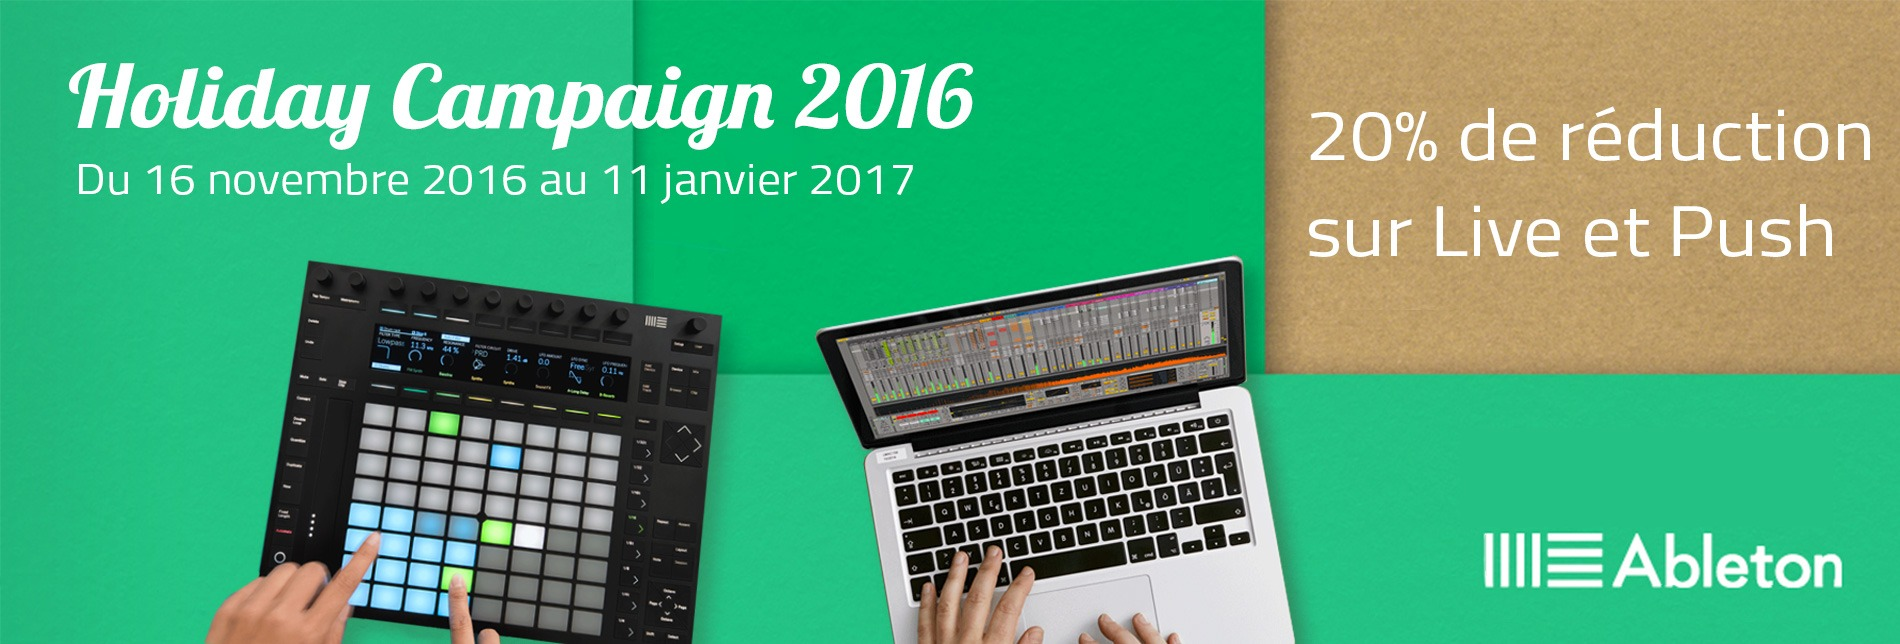 Ableton Holiday Campaign 2016